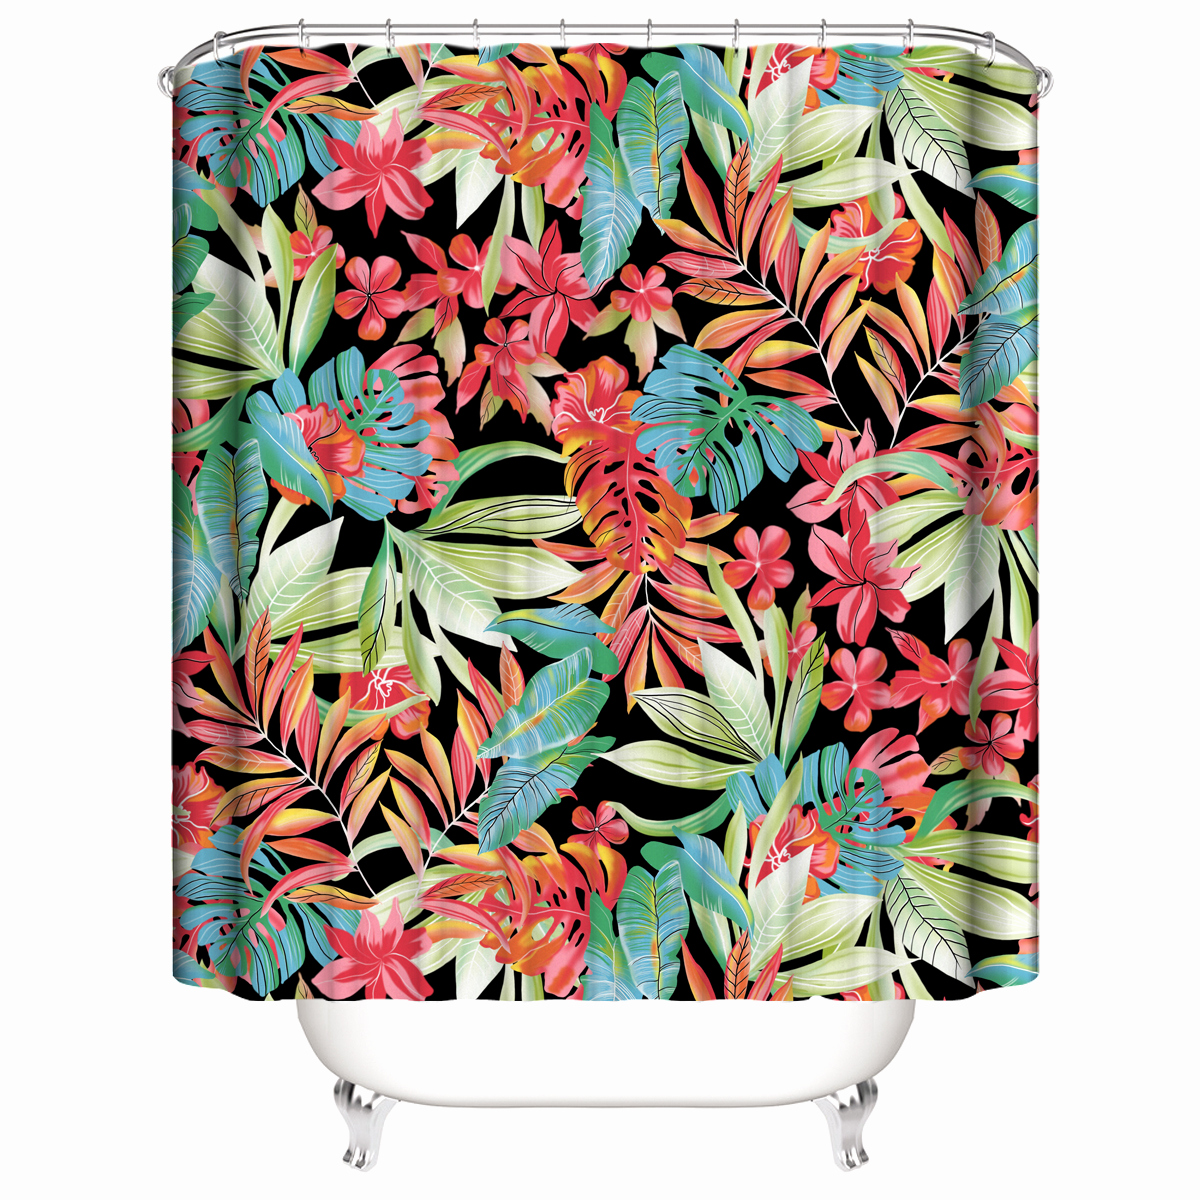 Tv Board Design Einzigartig 2019 Customized Waterproof Banana Fruit Flowers Red Autumnal Leaves Shower Curtains 3d Digital Printing Bathroom Curtains with Rings From